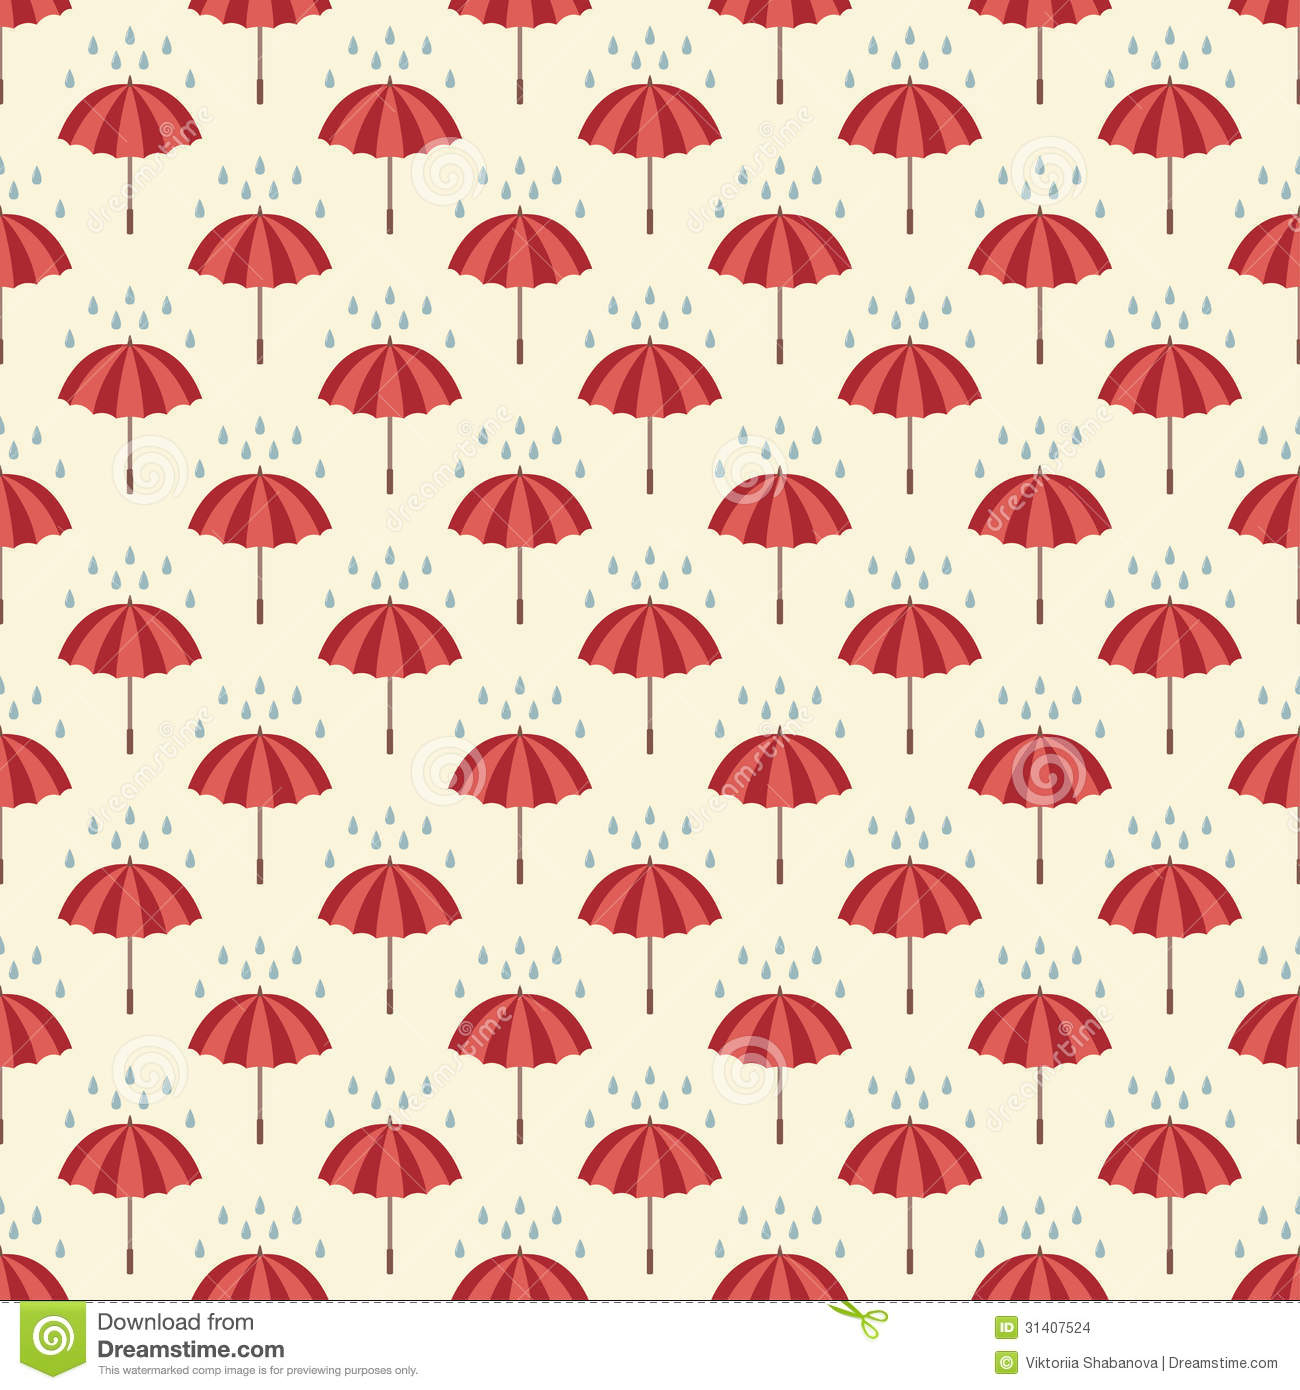 Seamless Pattern With Umbrellas And Rain Drops Stock Vector